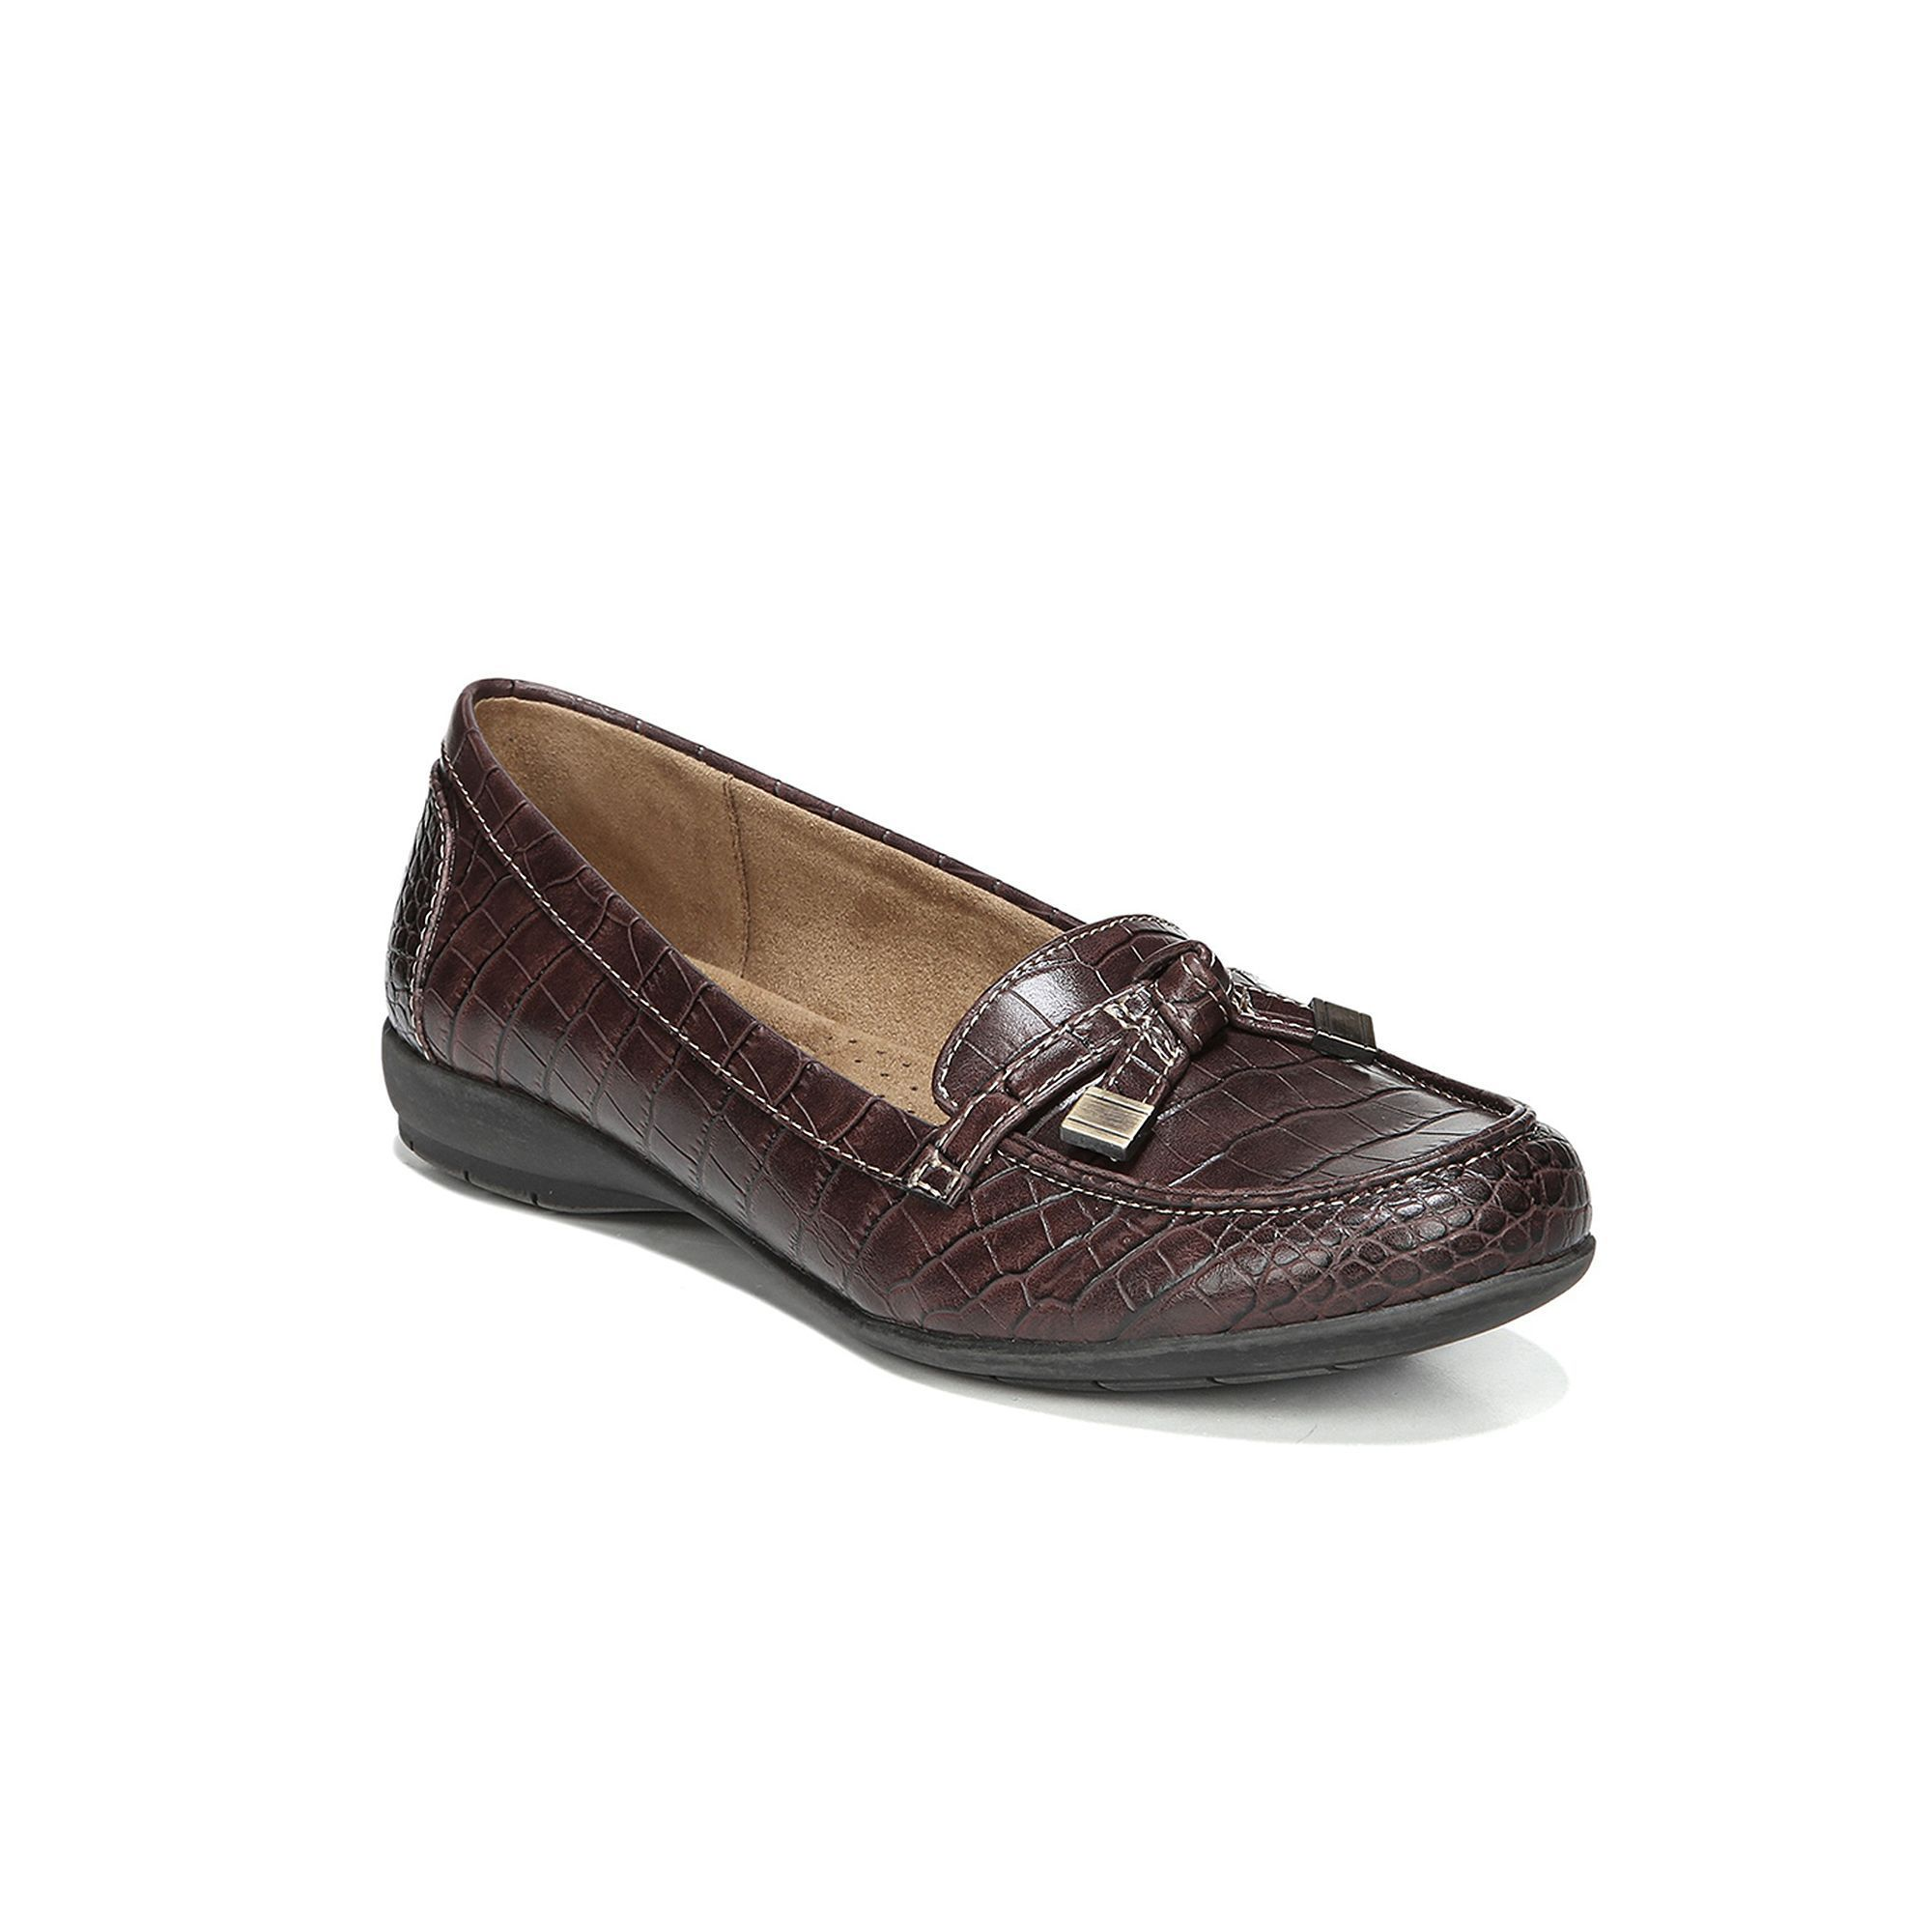 NaturalSoul by naturalizer ... Gracee Women's Slip-On Shoes YCVE2eNr2G